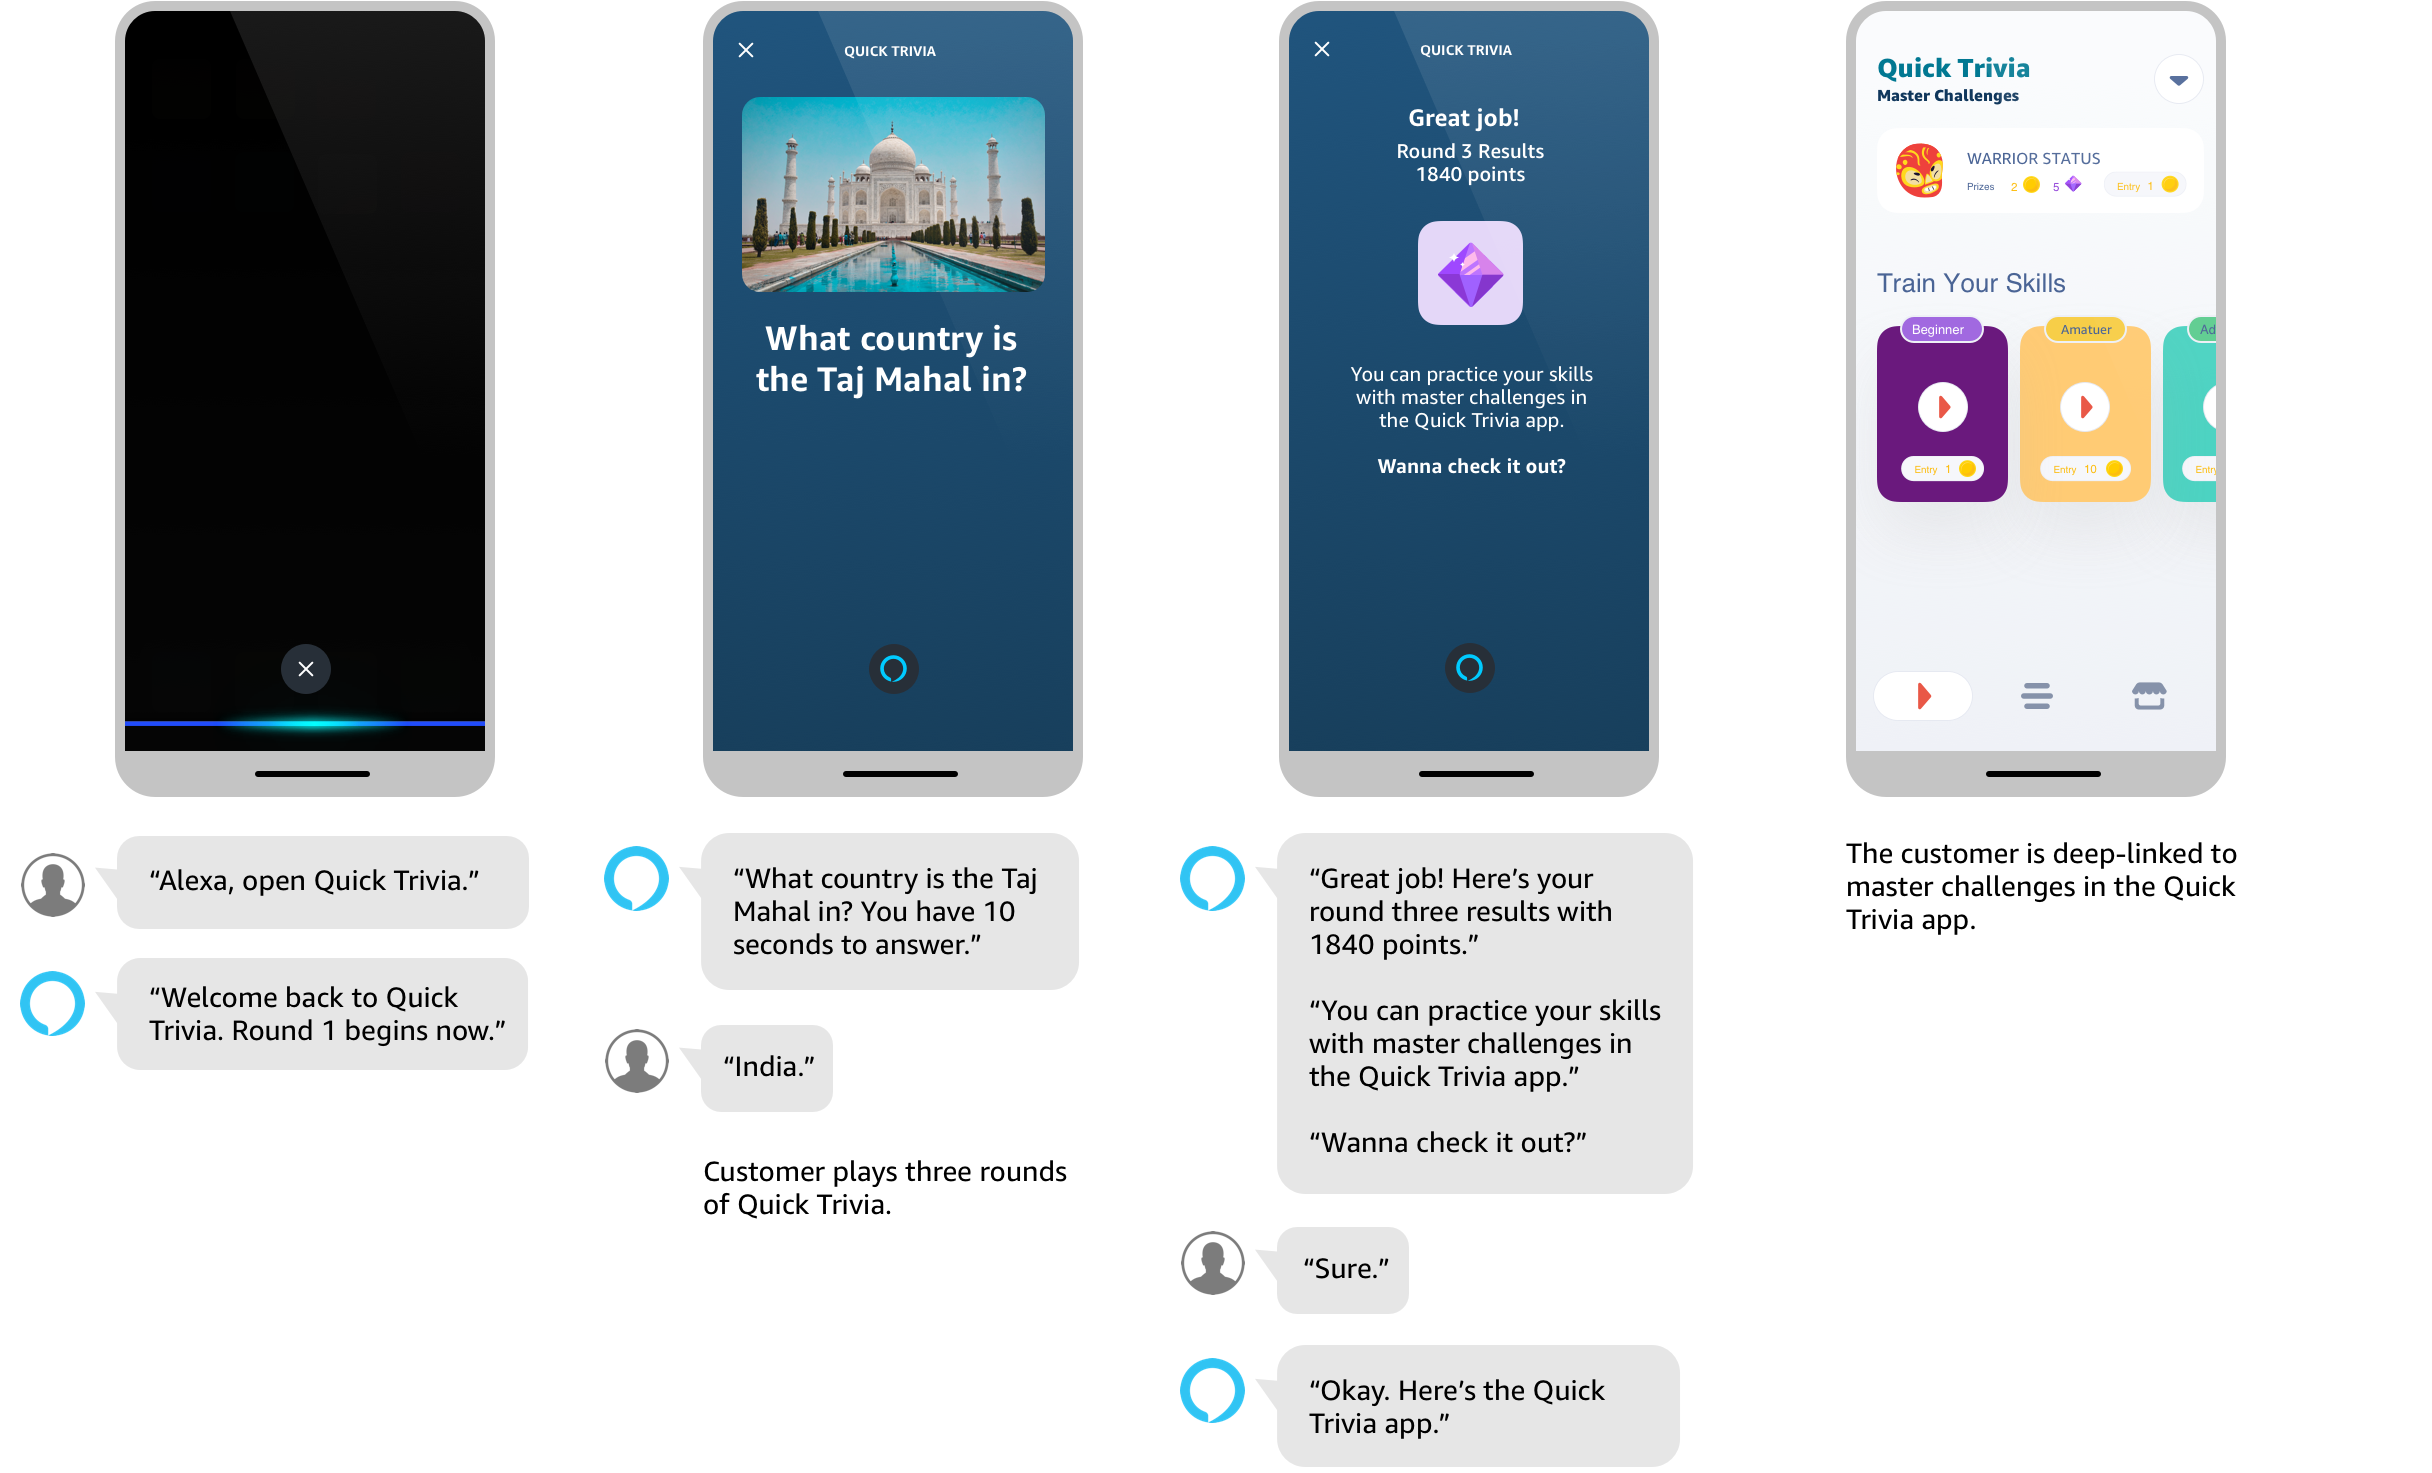 Image of voice enabled gameplay on an app. Customer asks Alexa to open Quick Trivia app. Alexa responds with Welcome back to Quick Trivia. Round 1 begins now. What country is the Taj Mahal in? You have 10 seconds to answer. The customer responds with India. The customer plays 3 rounds of Quick Trivia. Alexa responds with Great job! Here\'s your round three results with 1840 points. You can practice your skills with master challenges in the Quick Trivia app. Want to check it out? Customer says Sure. Alexa responds with Okay, Here's the Quick Trivia app. The customer is deep-linked to the master challenges in the Quick Trivia app.